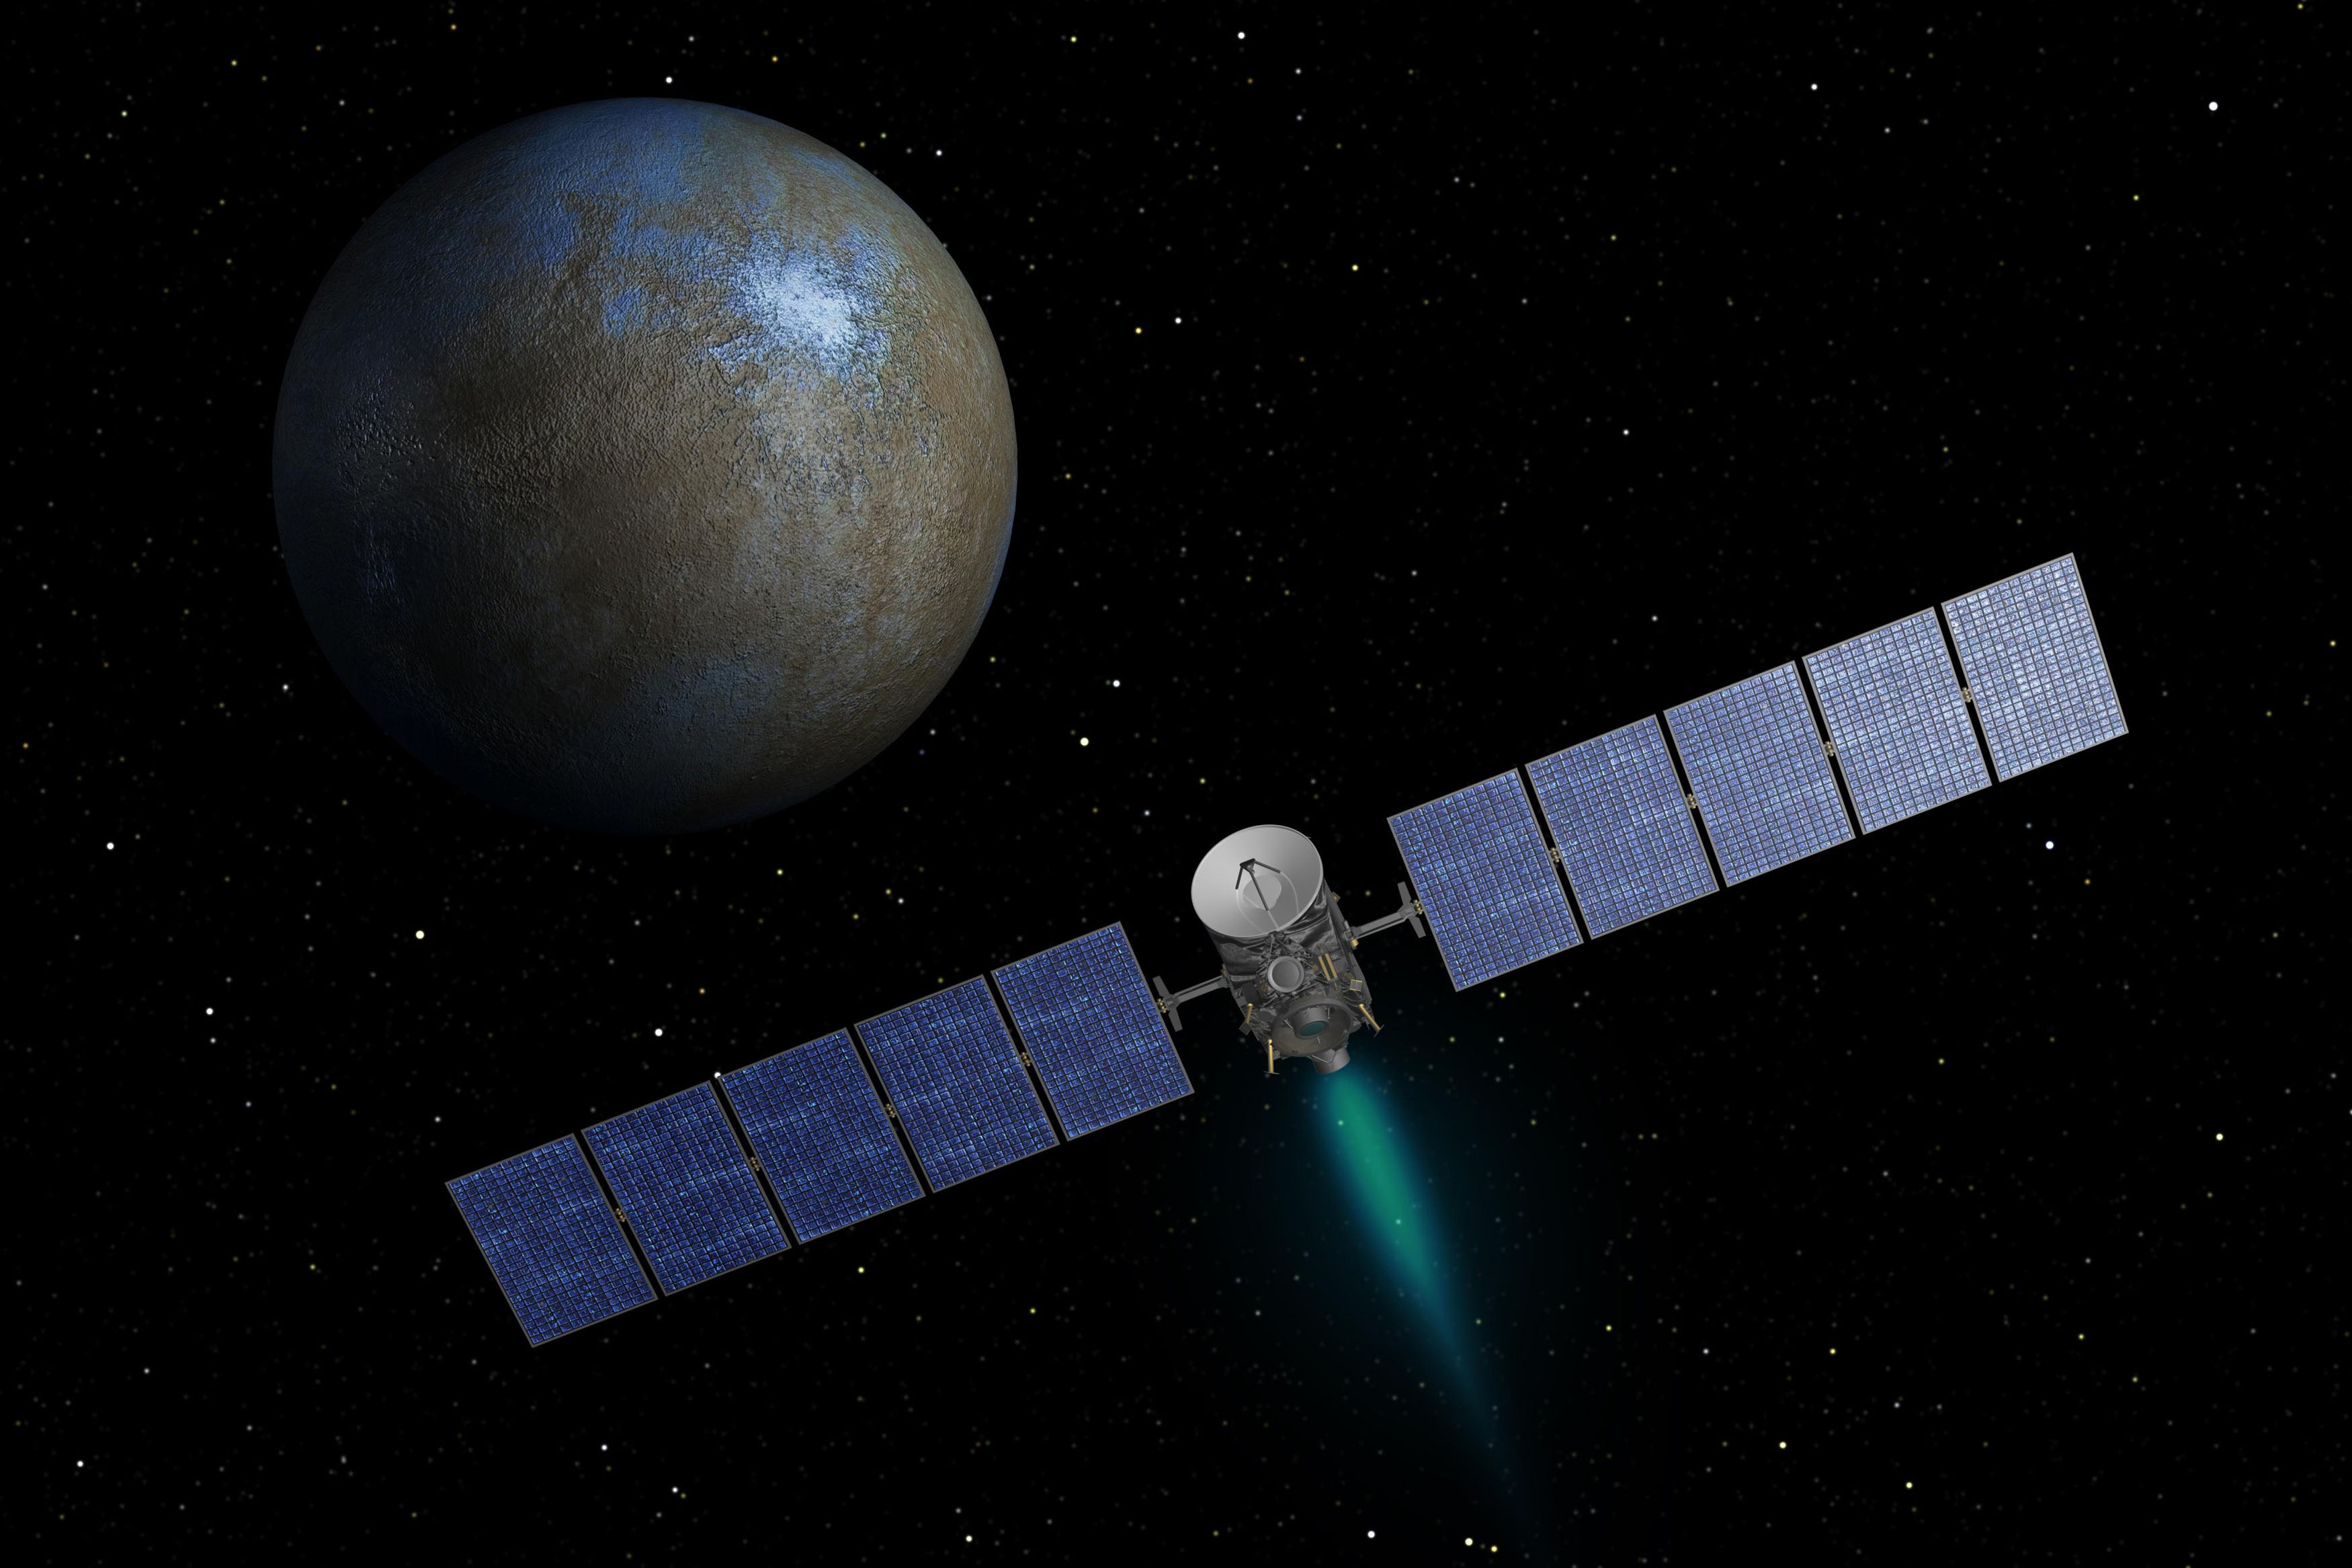 Orbit: A space probe will stay over Ceres for 16 months to ...